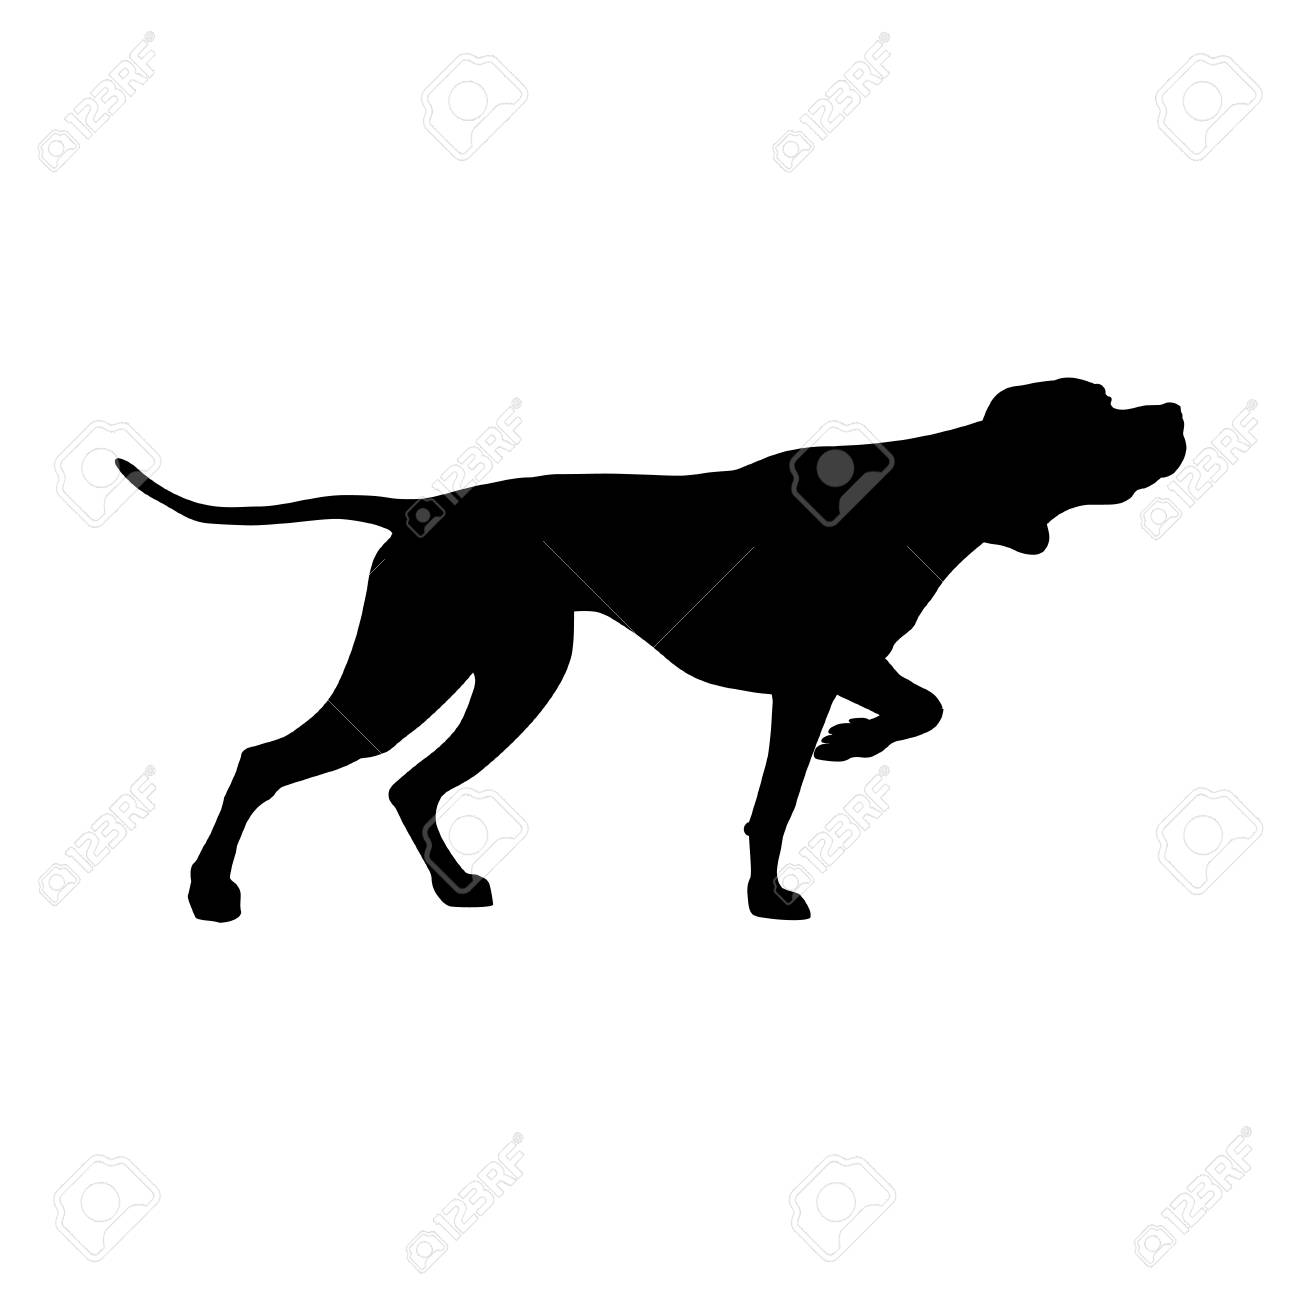 Silhouette of English pointer. Gun dog breed. Vector illustration isolated on the white background - 116469625